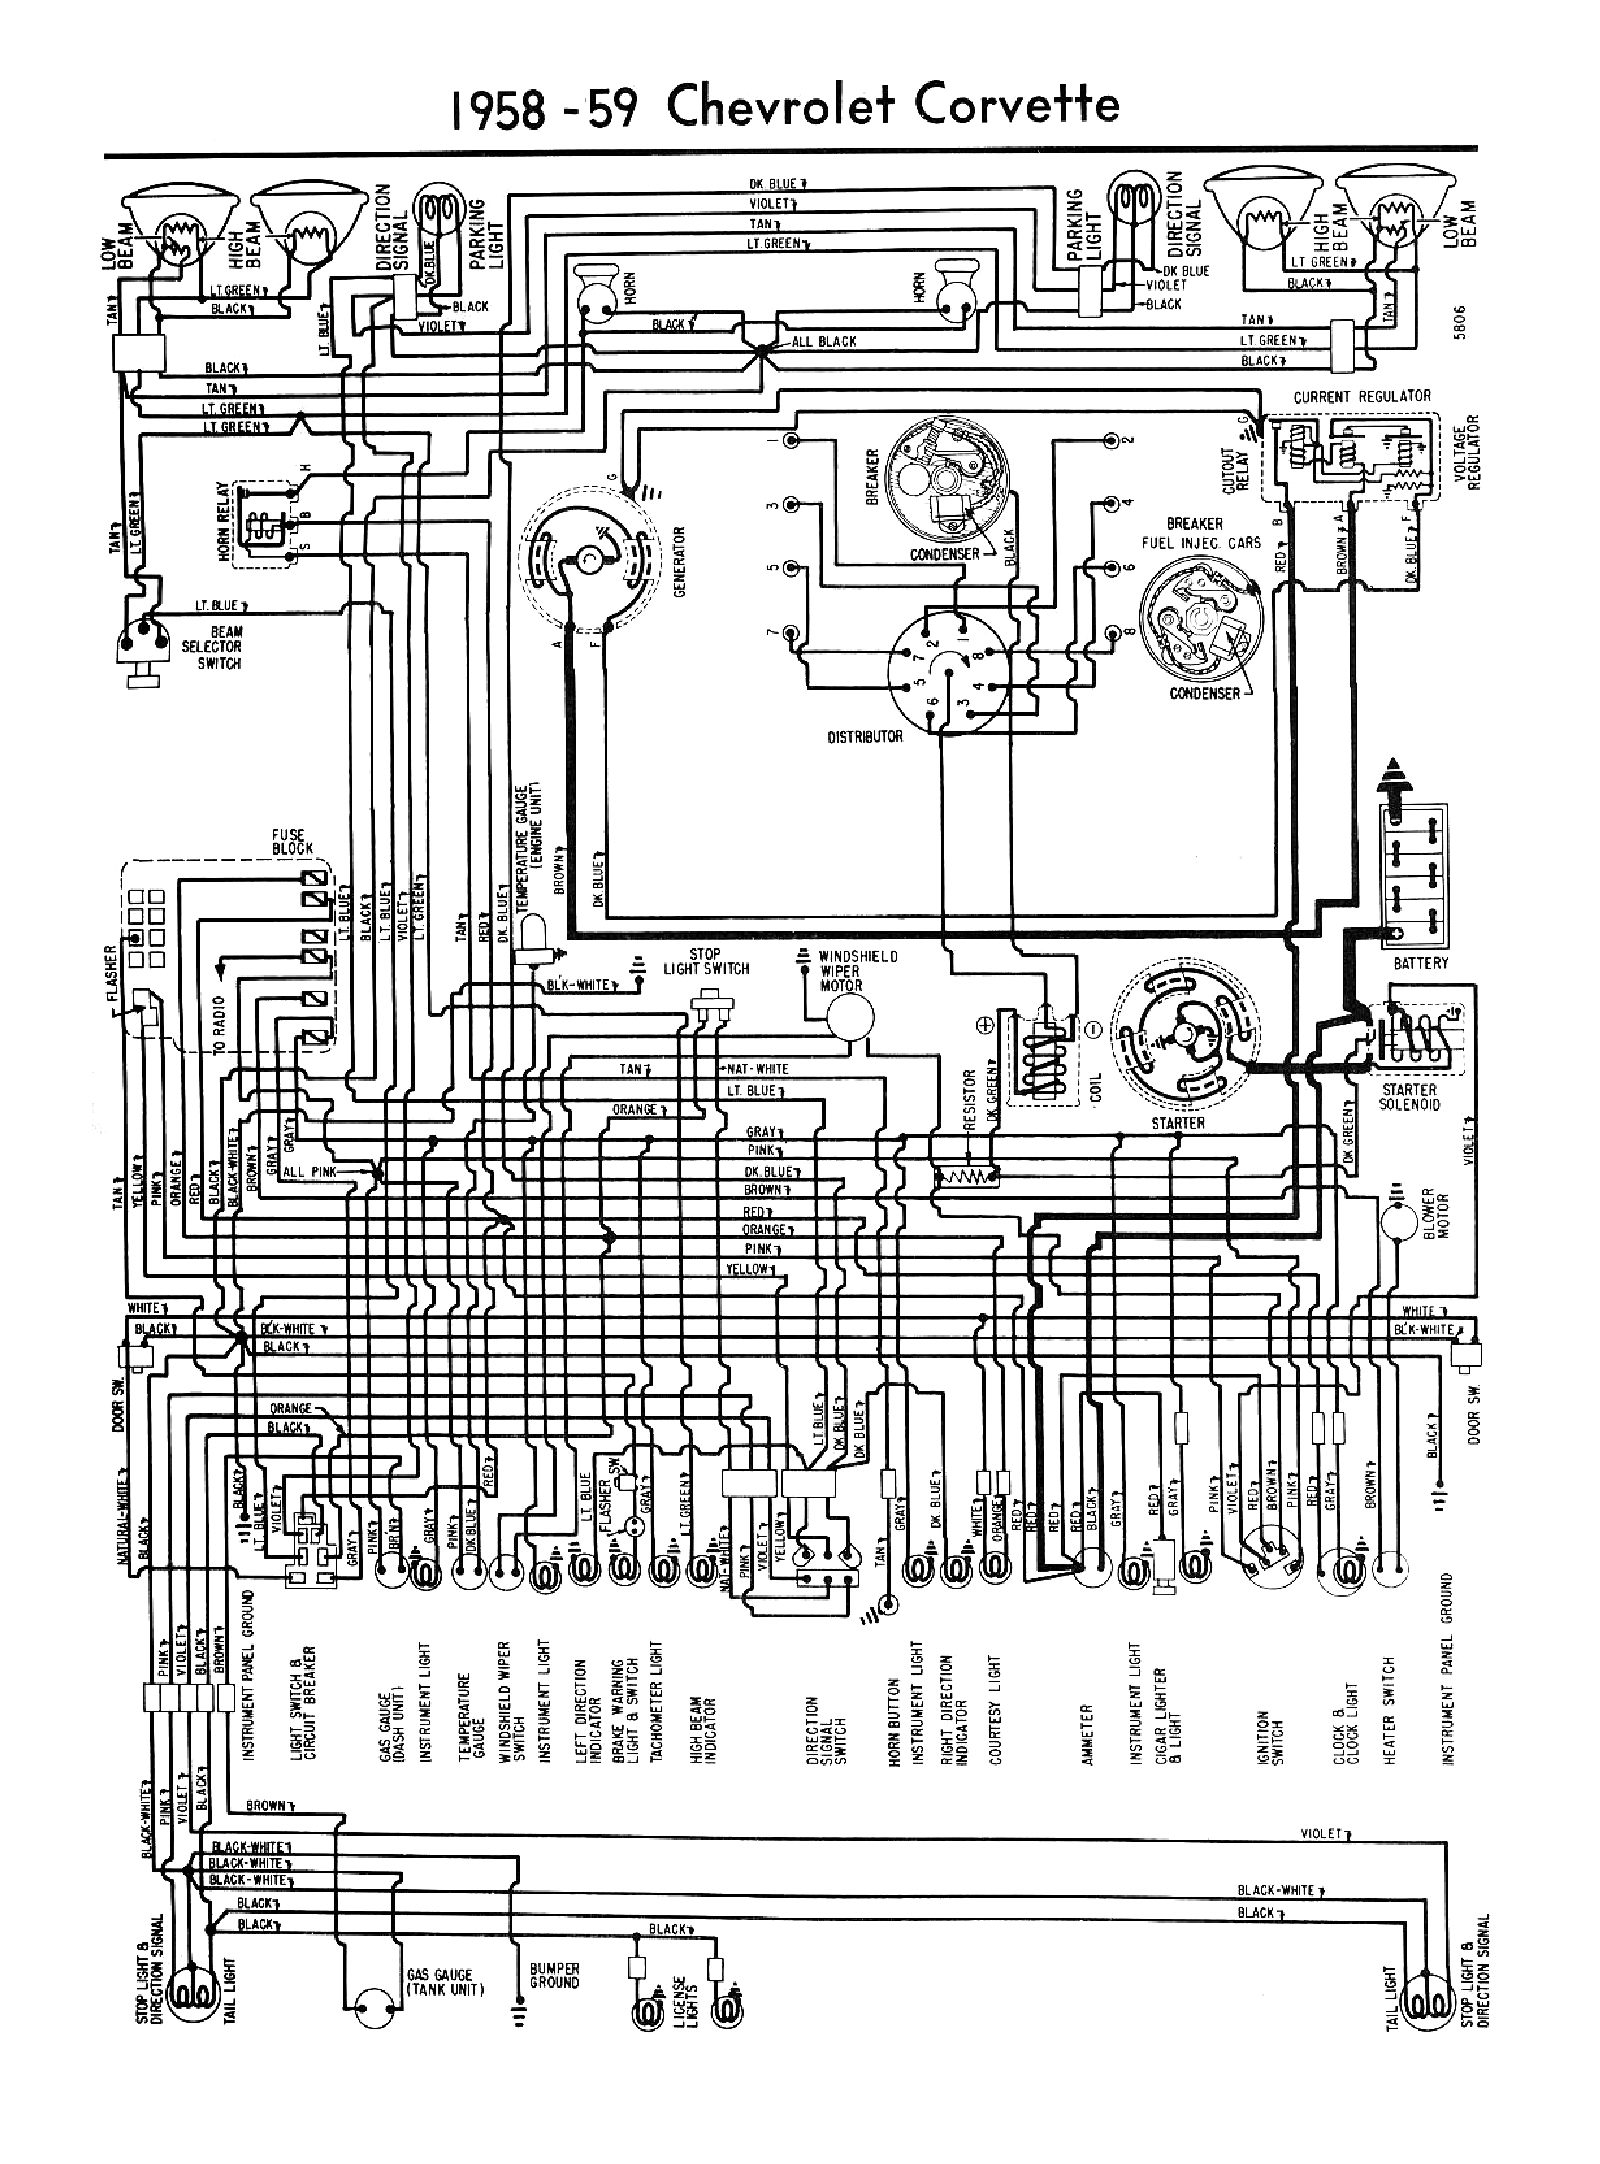 1972 Chevy Truck Wiring Diagram Pdf Simple Wiring Diagram 2014 Chevrolet PU  1970 Chevrolet Pu Fuse Box